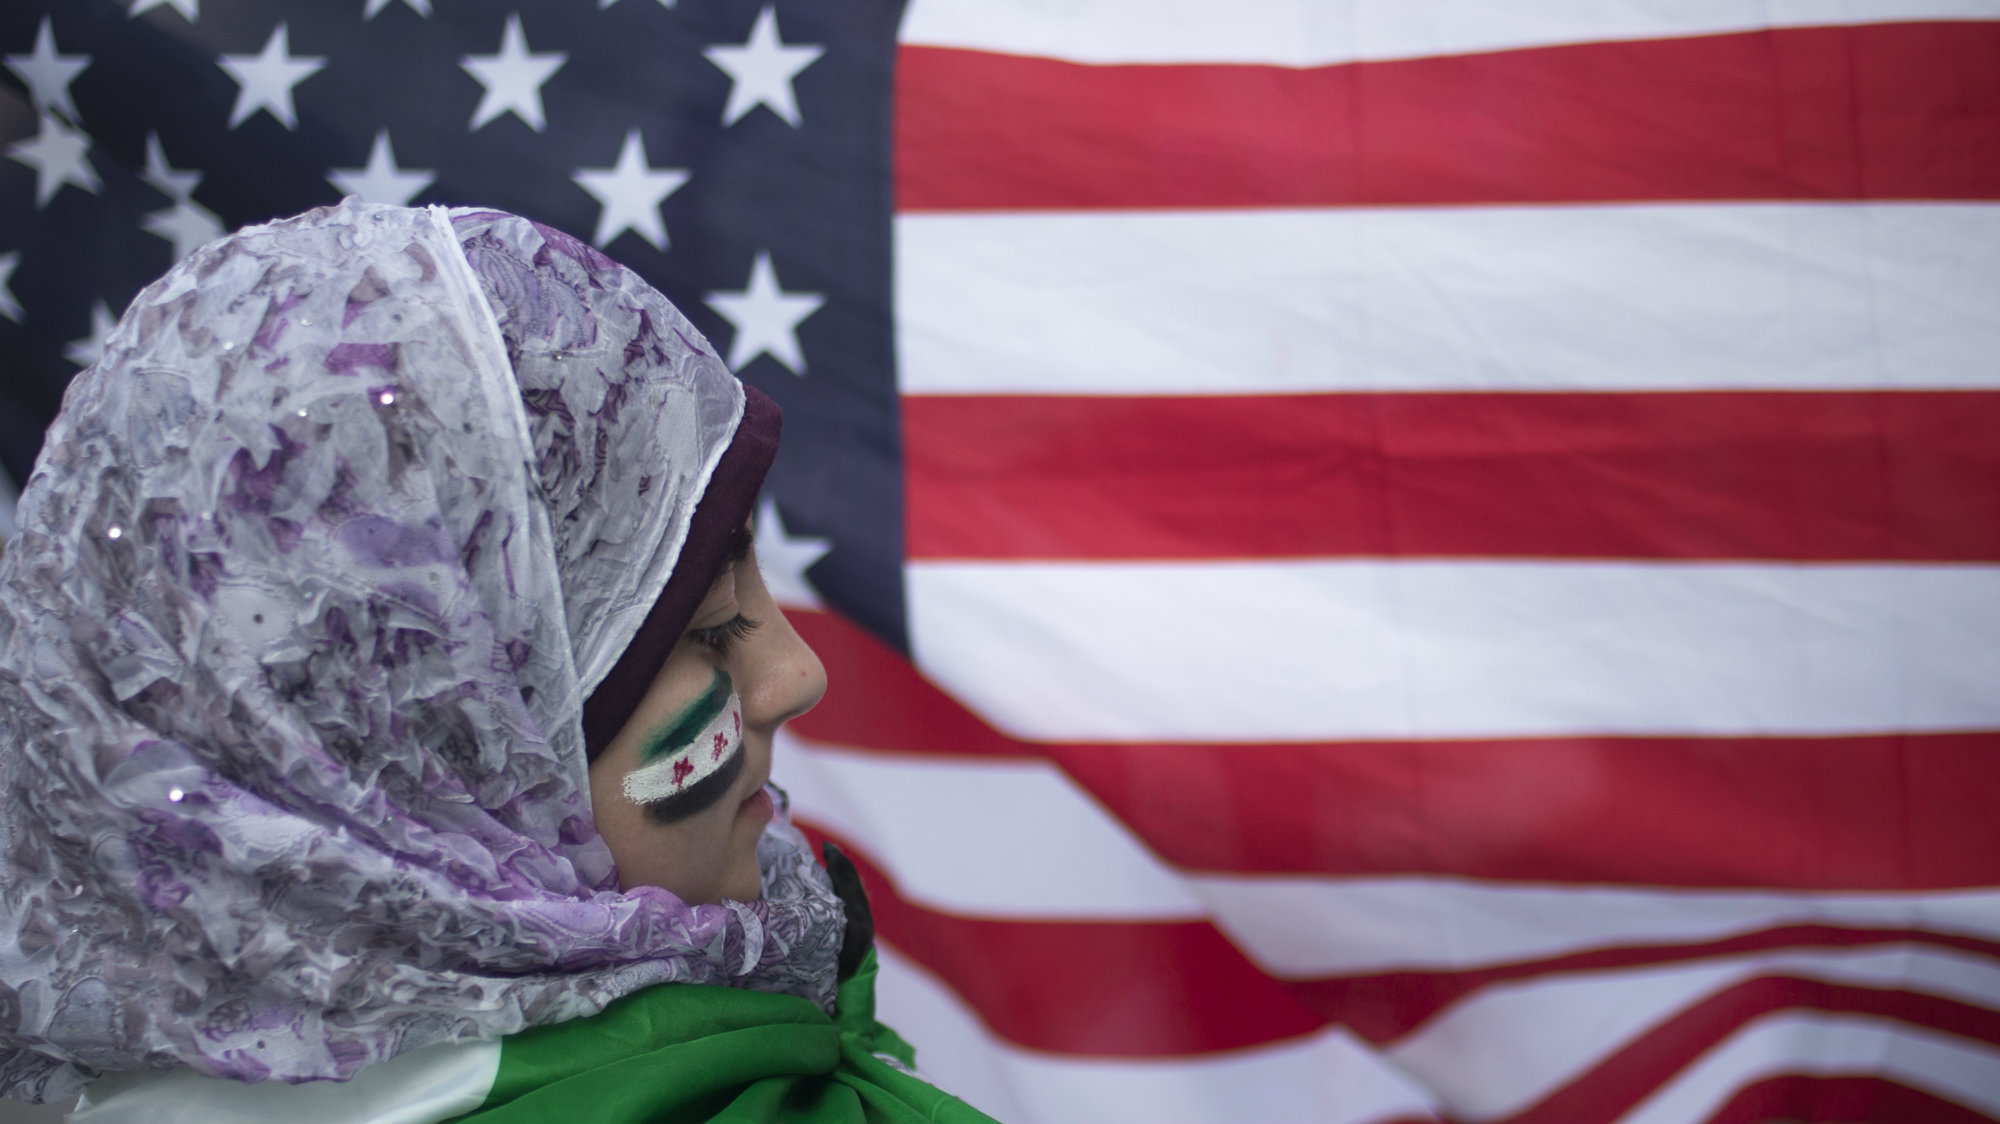 With cheeks painted in the colors of Syria's flag, 13-year-old displaced Syrian girl Malek Al Rifai stands in front of a U.S. flag while taking part in a protest in front of the United Nations building in New York August 21, 2013.